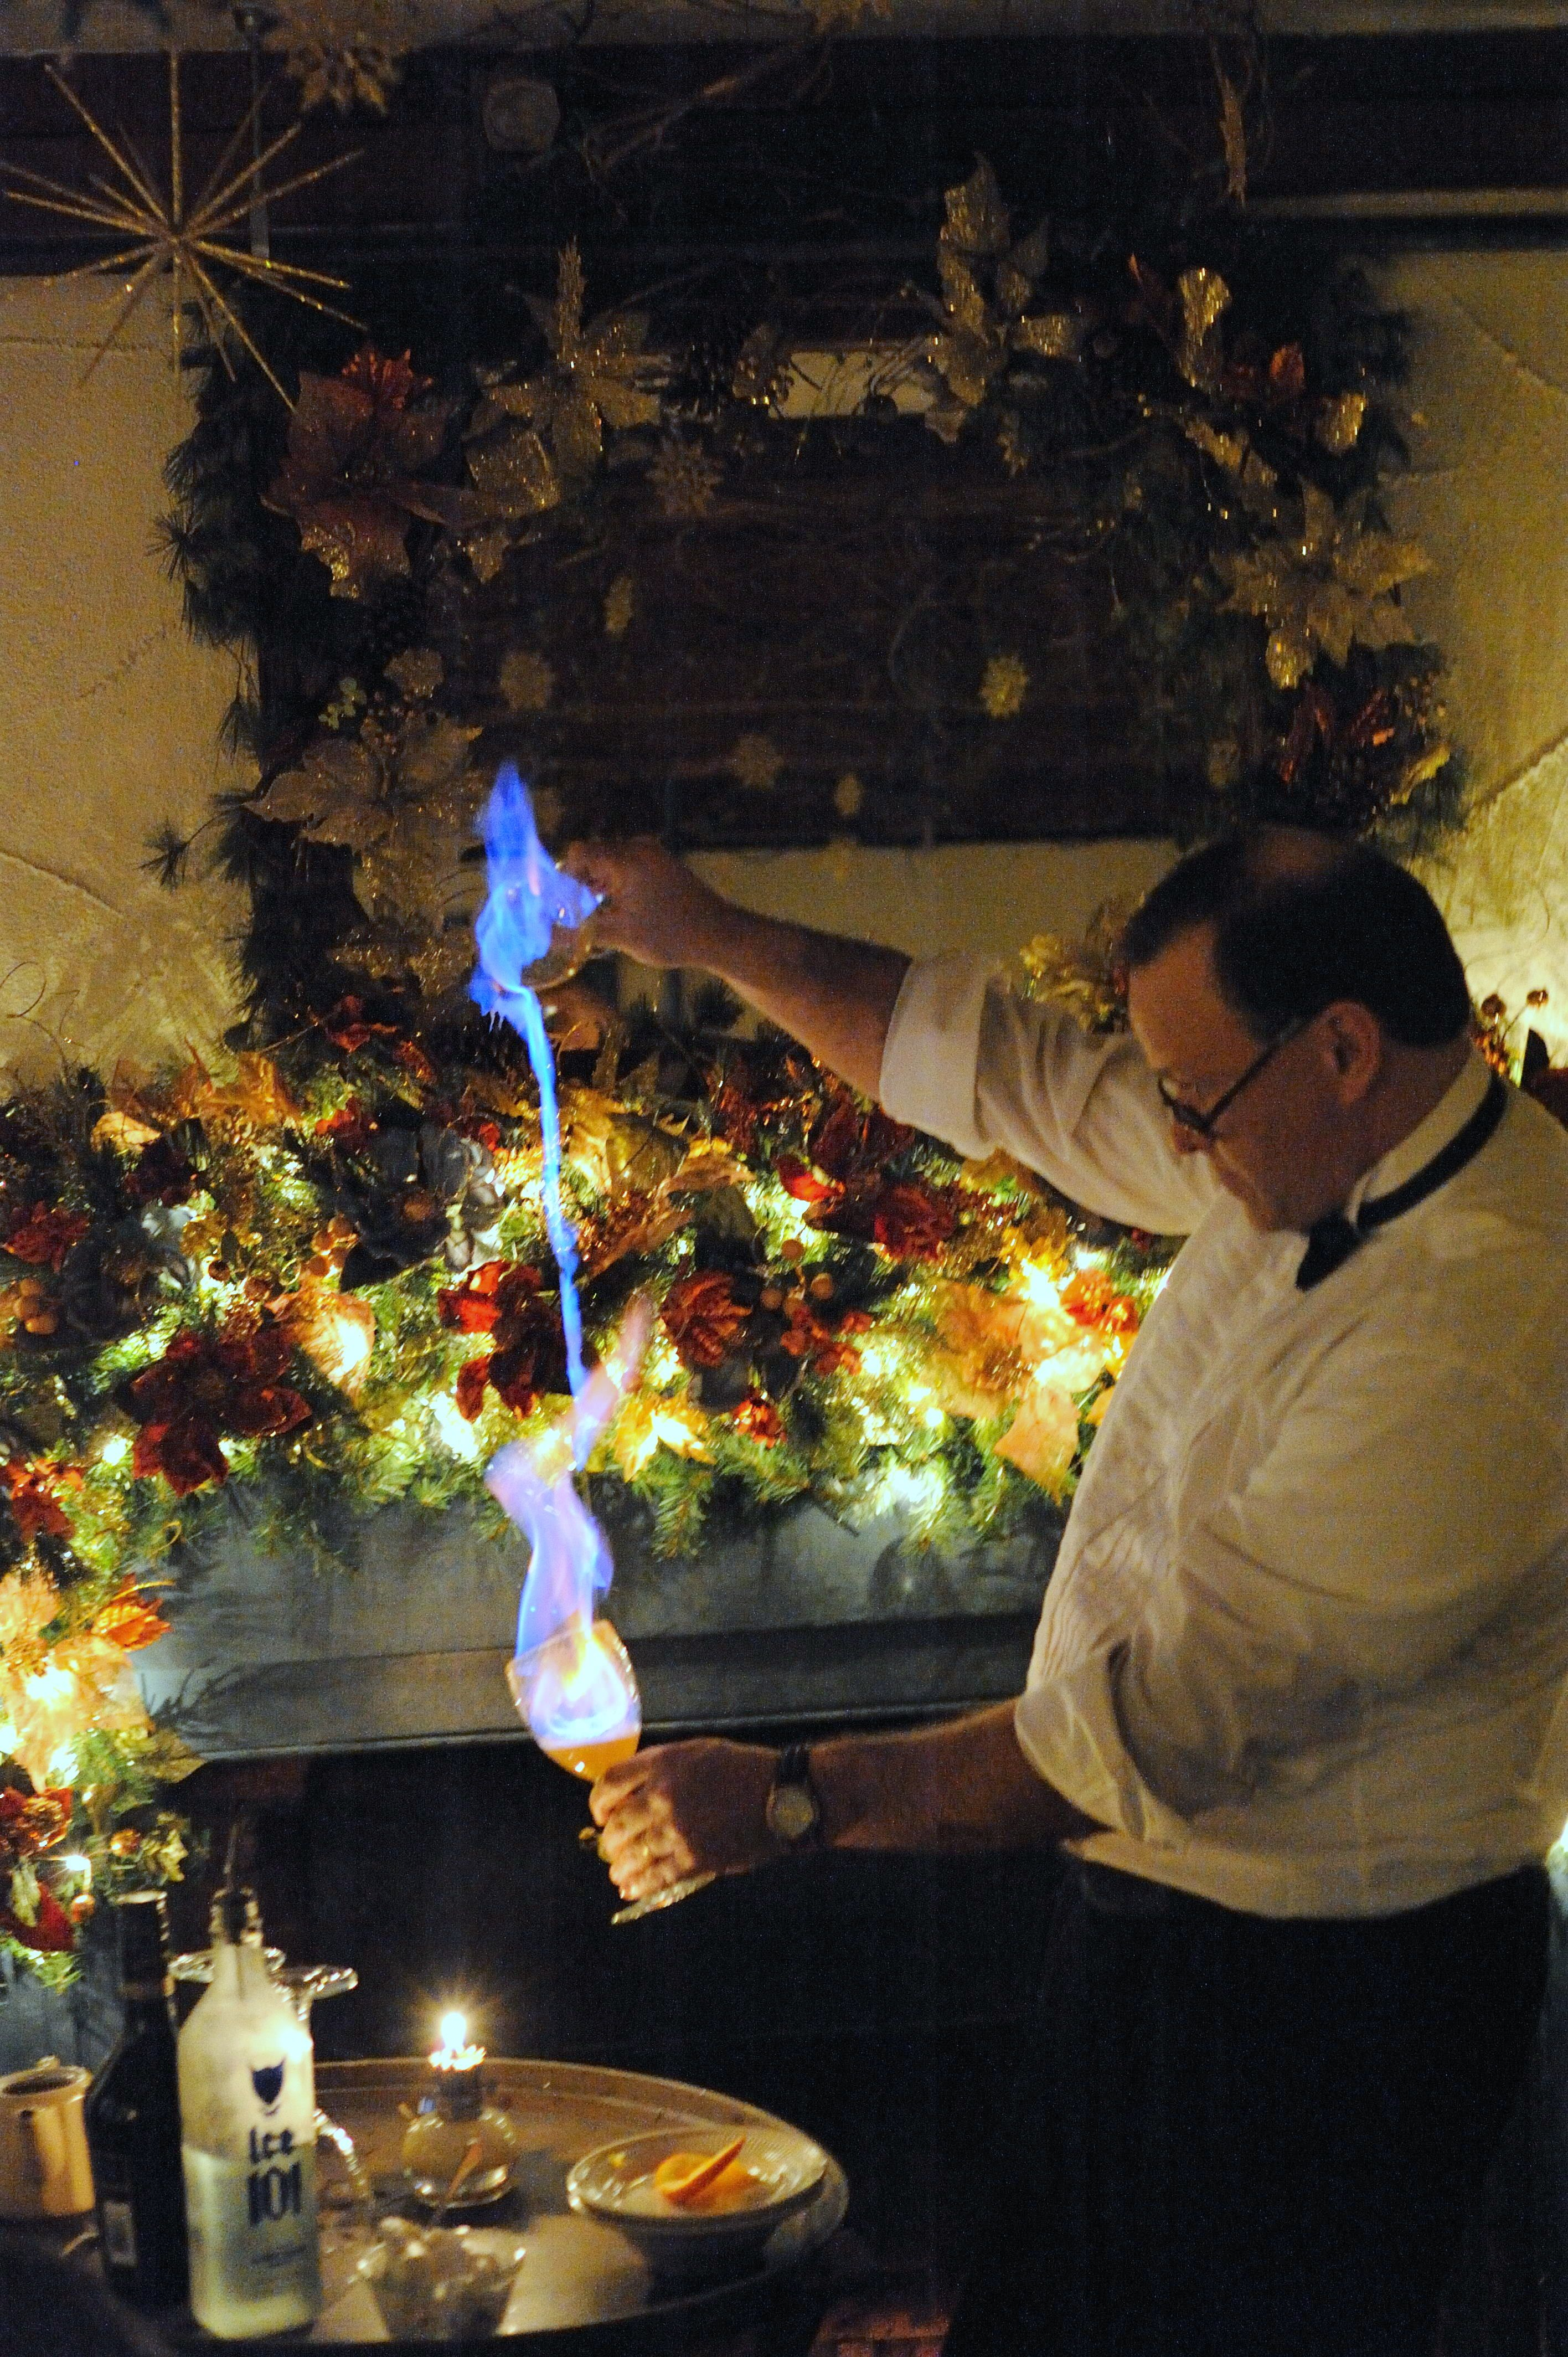 """Photo of Alan Cassell, waiter at 1785 Inn & Restaurant  http://www.the1785inn.com/ , preparing one of their signature flaming drinks, the """"Cocoa Lava."""" 1785 Inn & Restaurant is located at a Scenic Overlook in the White Mountains of NH between North Conway, NH and Jackson, NH. One of the top 15 views in the world from a hotel or inn."""